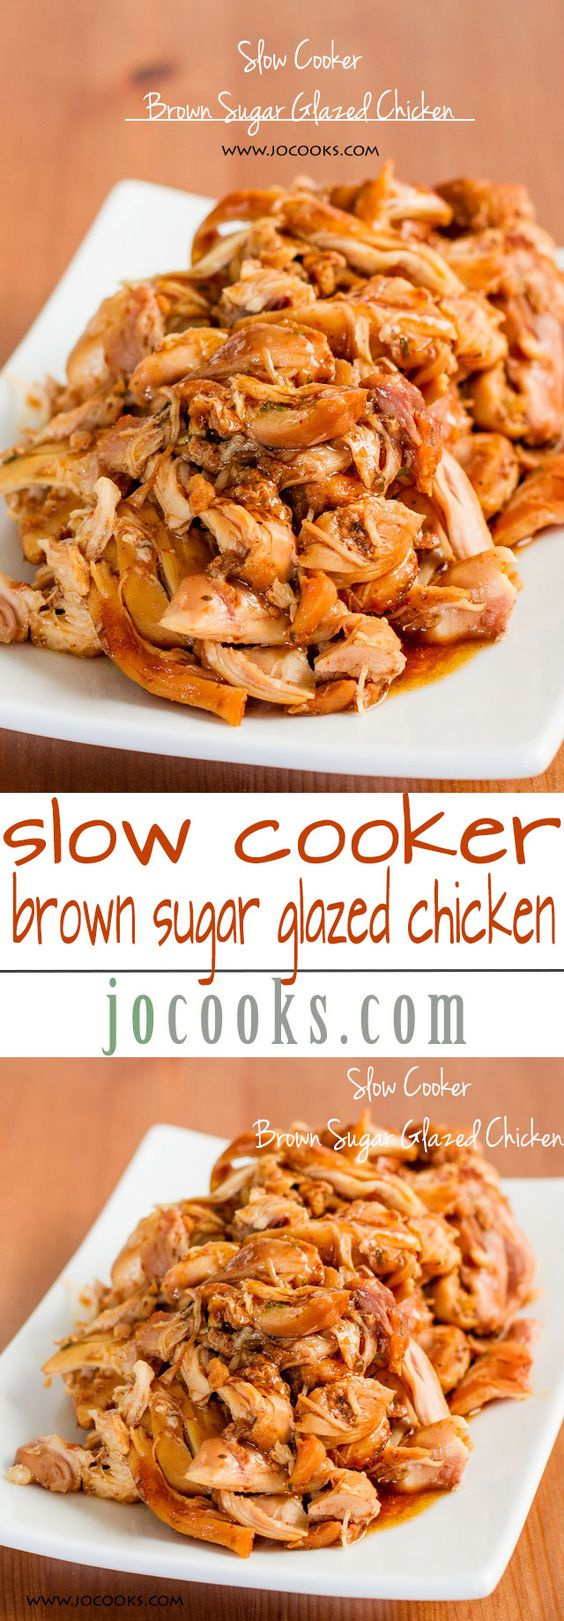 Slow Cooker Brown Sugar Glazed Pulled Chicken – this is probably the most tender and delicious chicken I'll ever have.